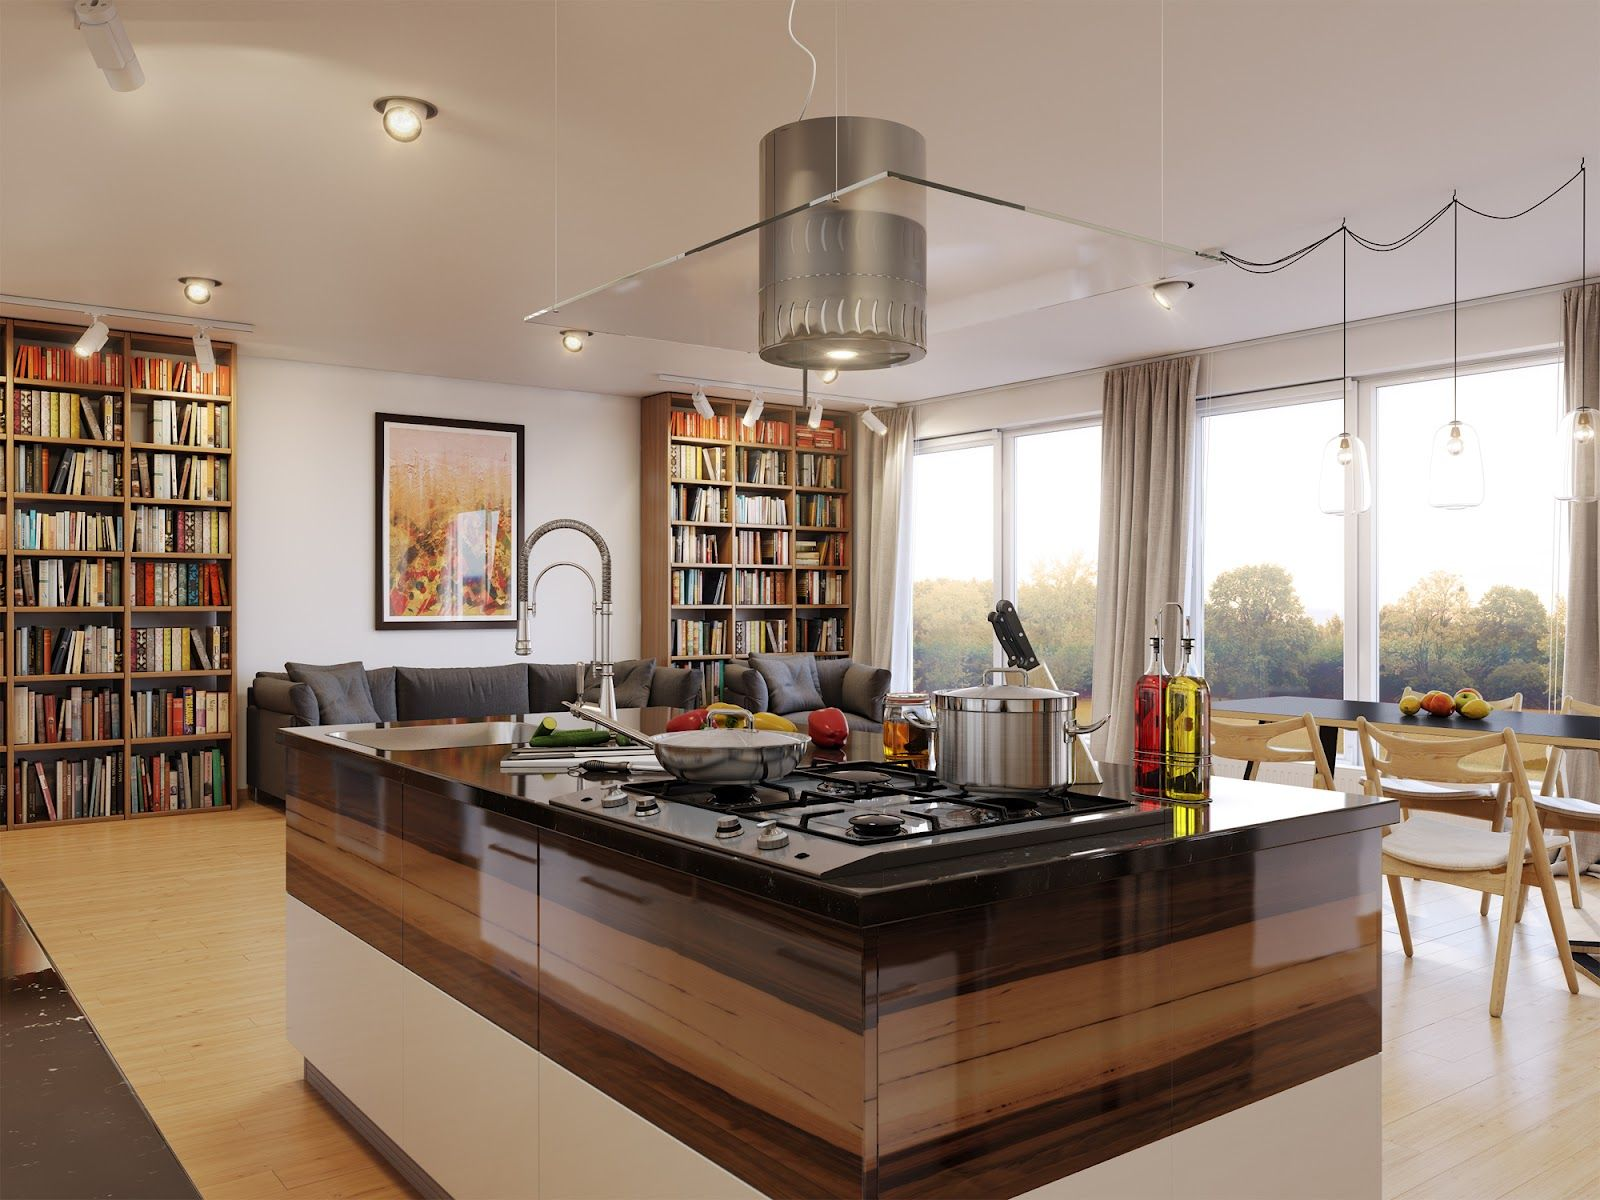 White brown kitchen library scheme by dmitry kobtsev on home designing com